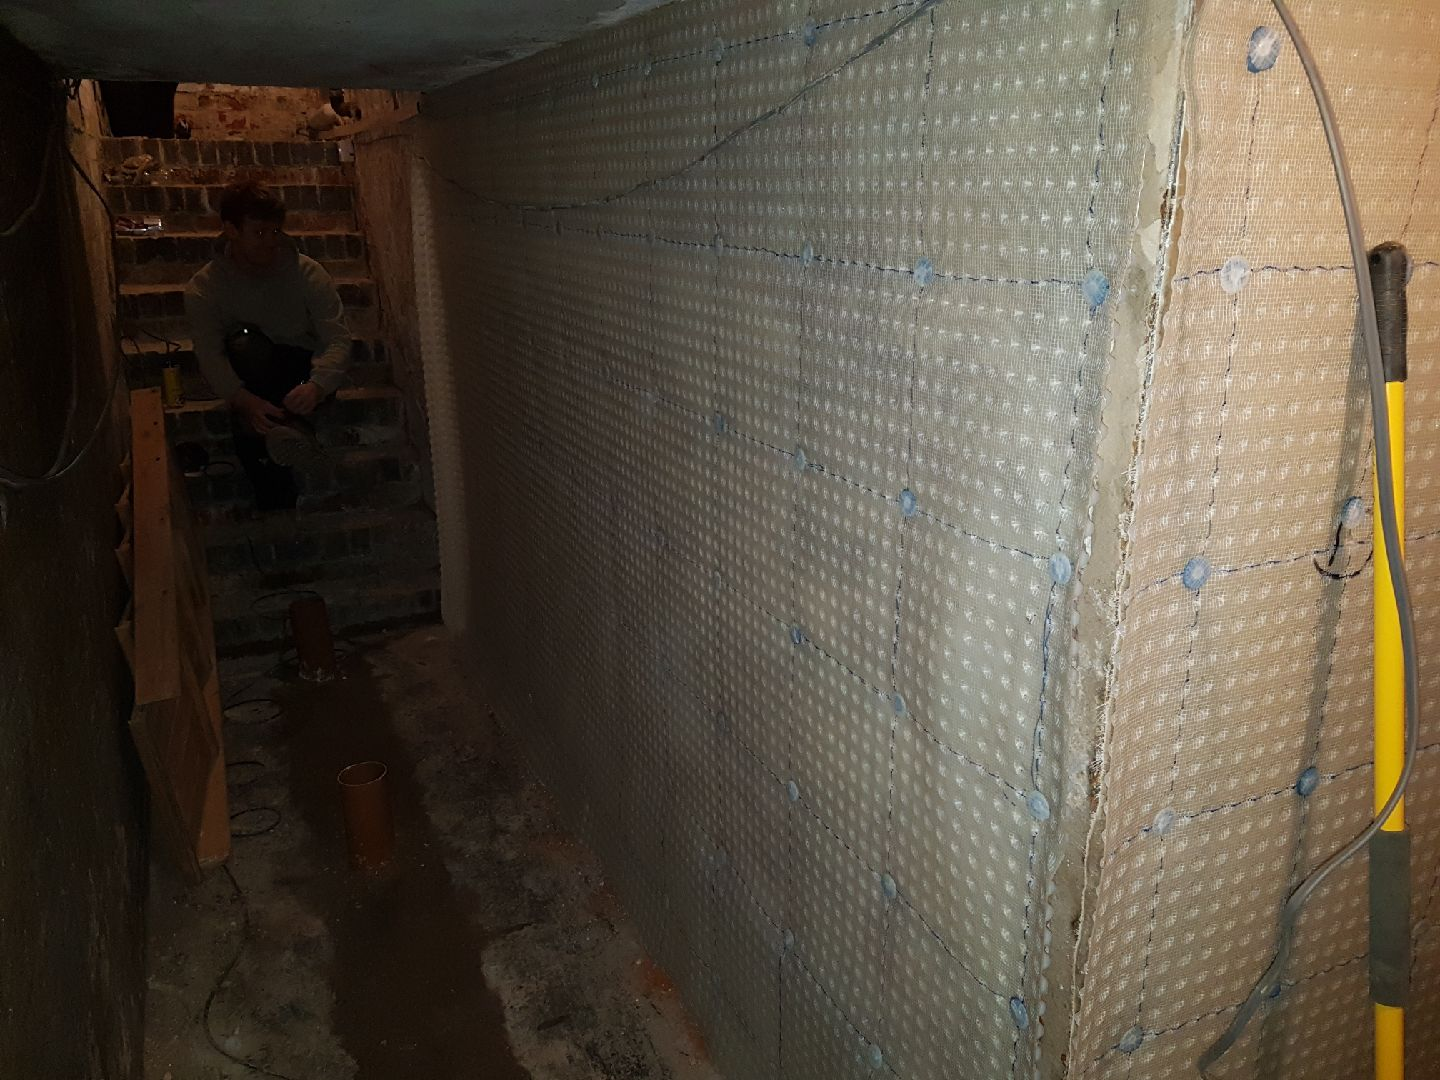 Membranes installed throughout